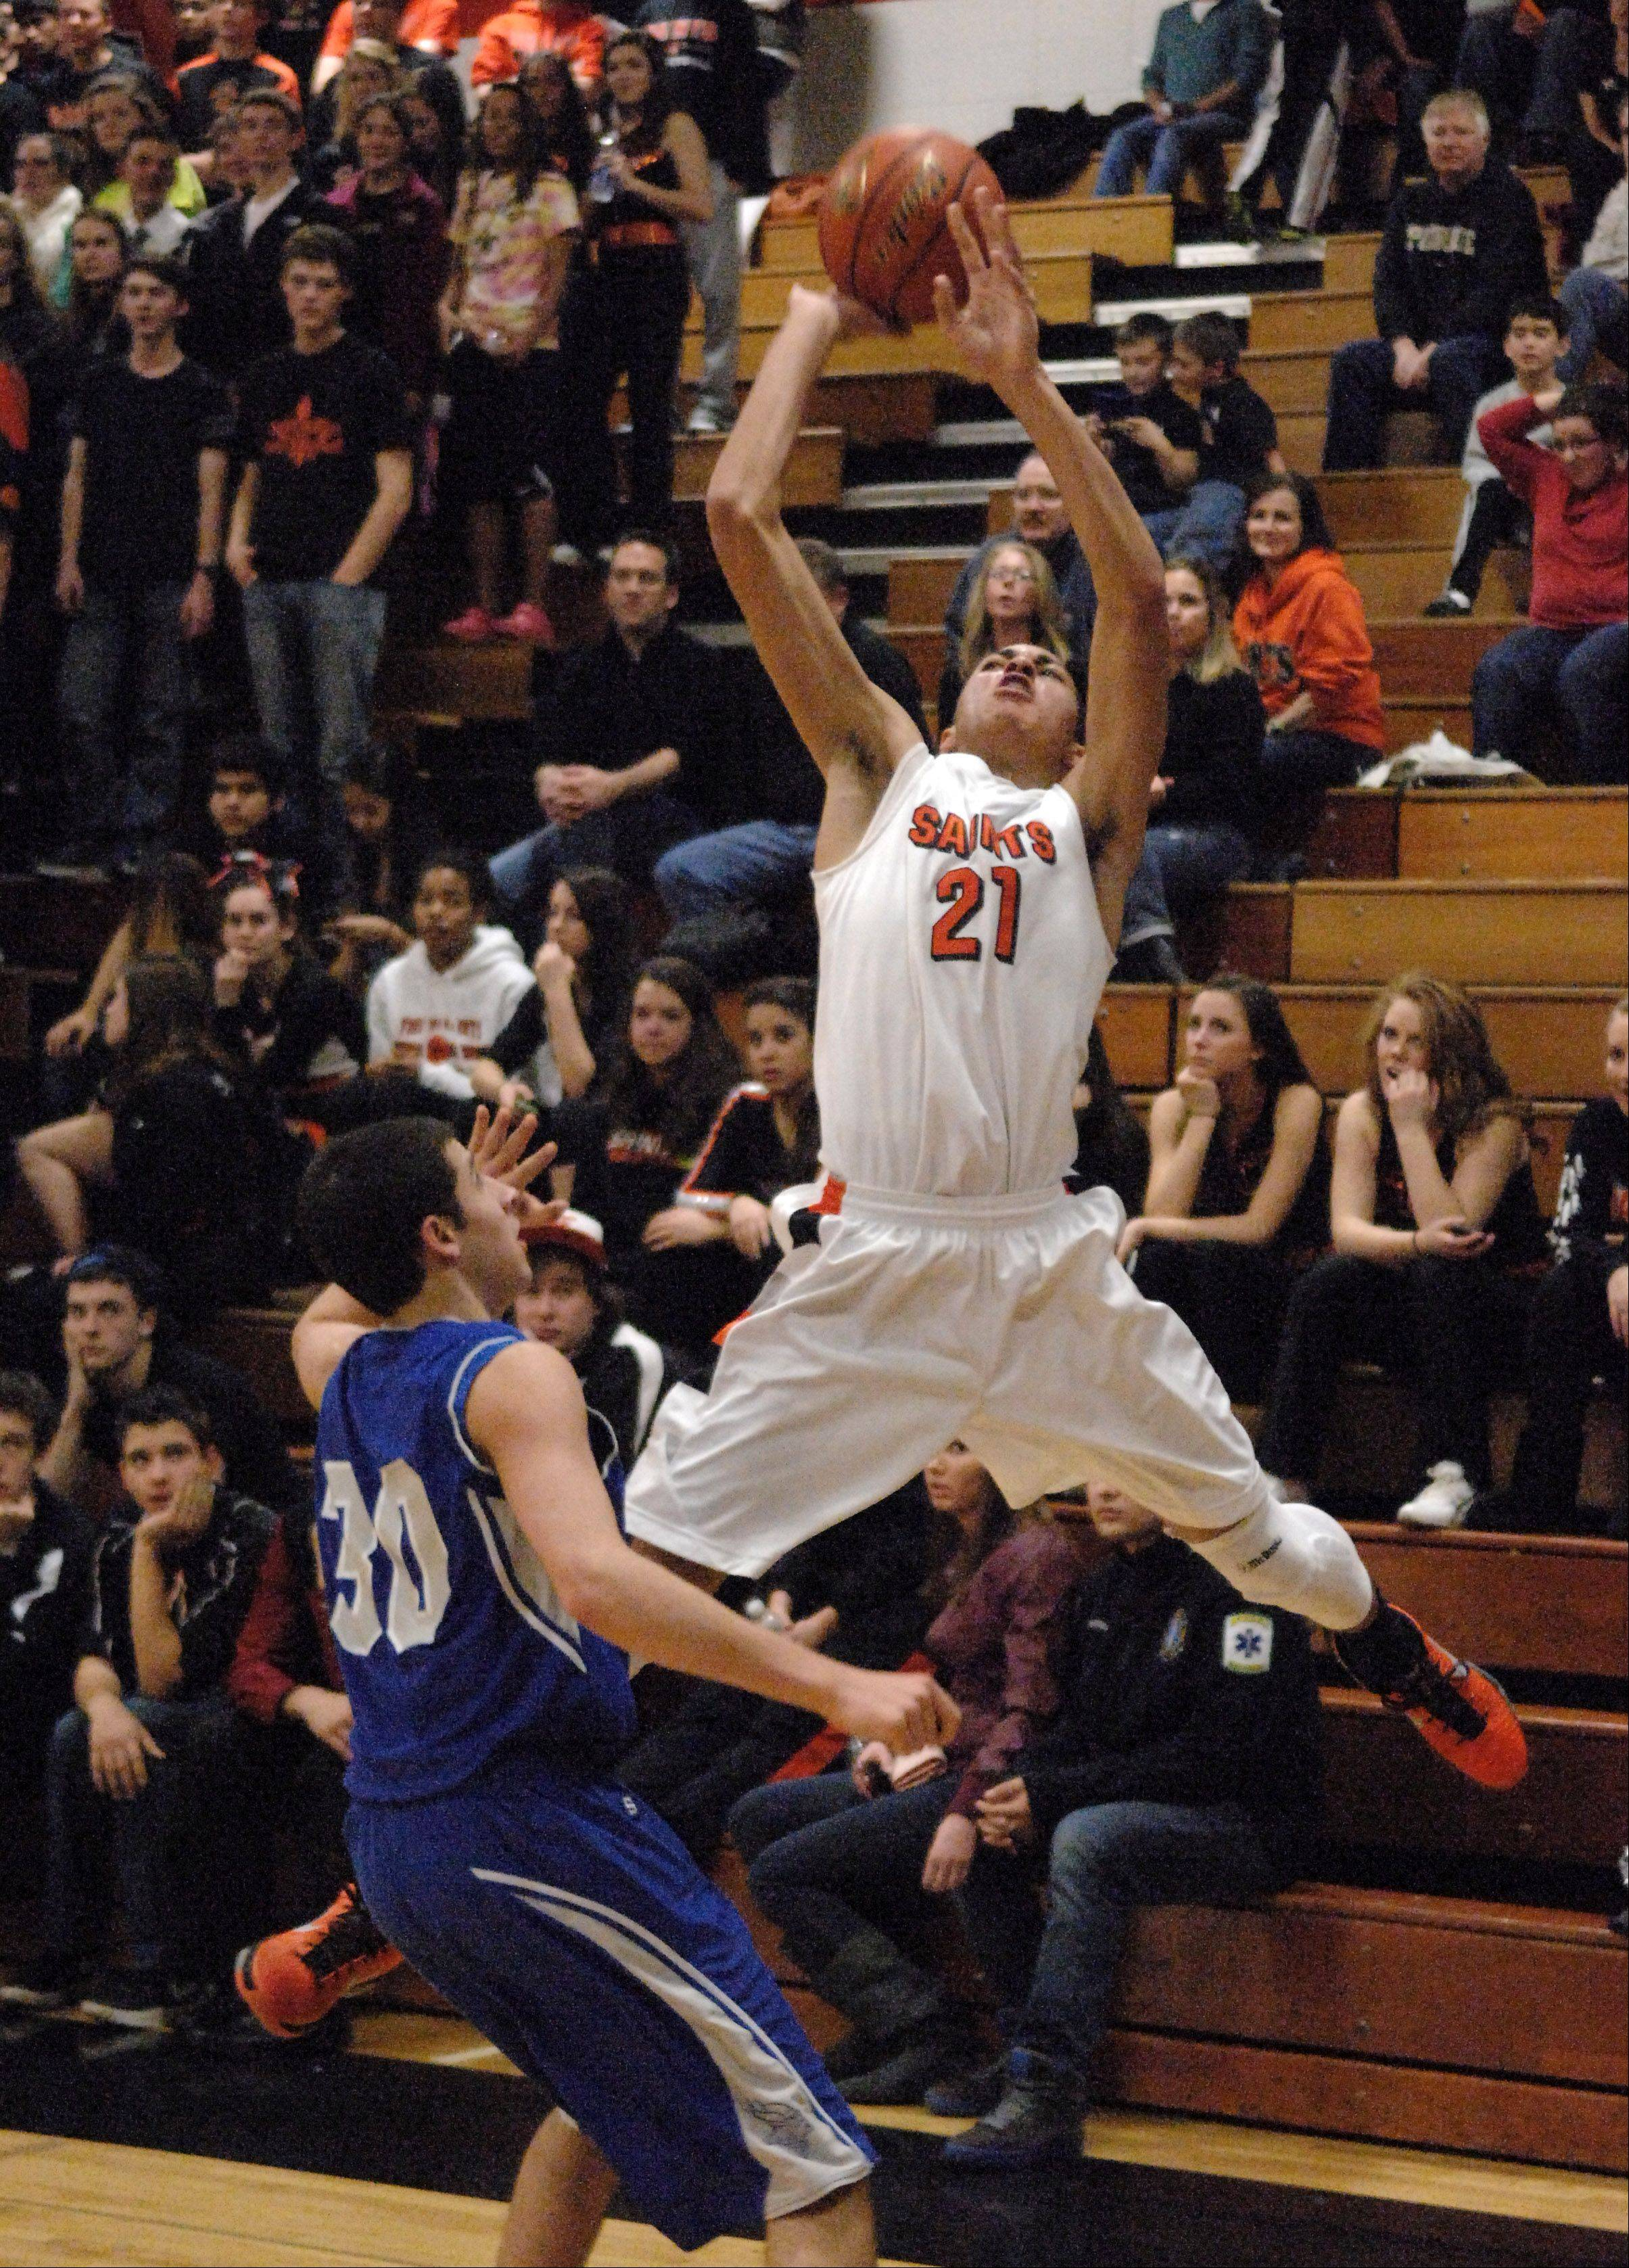 St. Charles East's Kendall Stephens draws a foul while attempting a 3-pointer against Geneva.